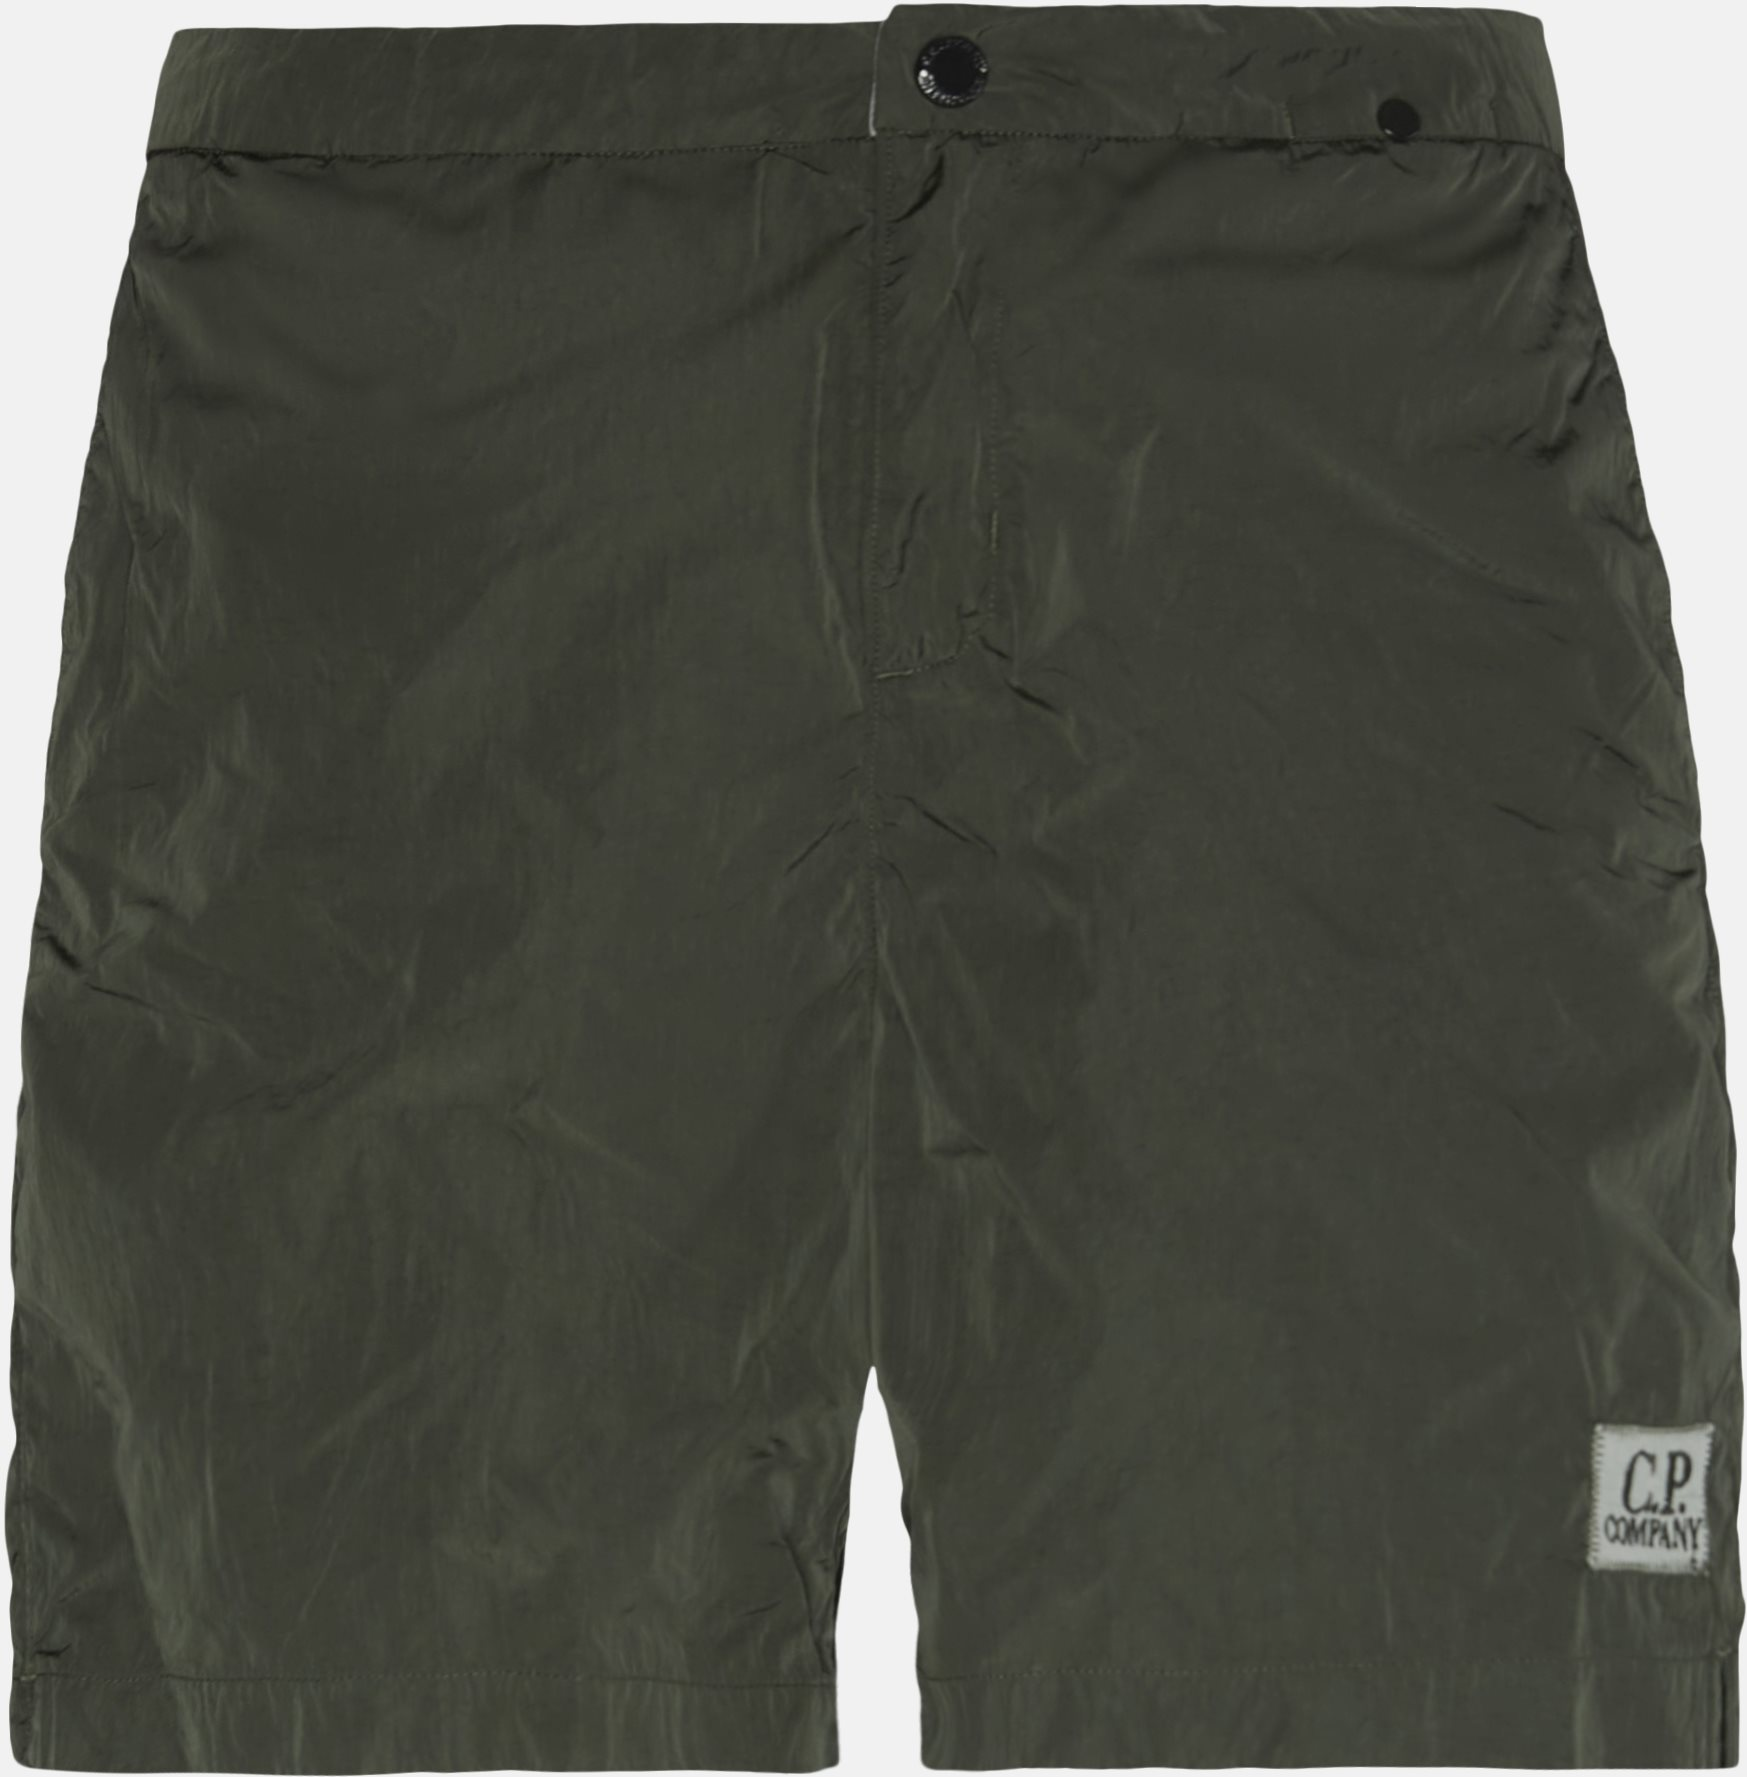 Badeshorts - Shorts - Regular - Army